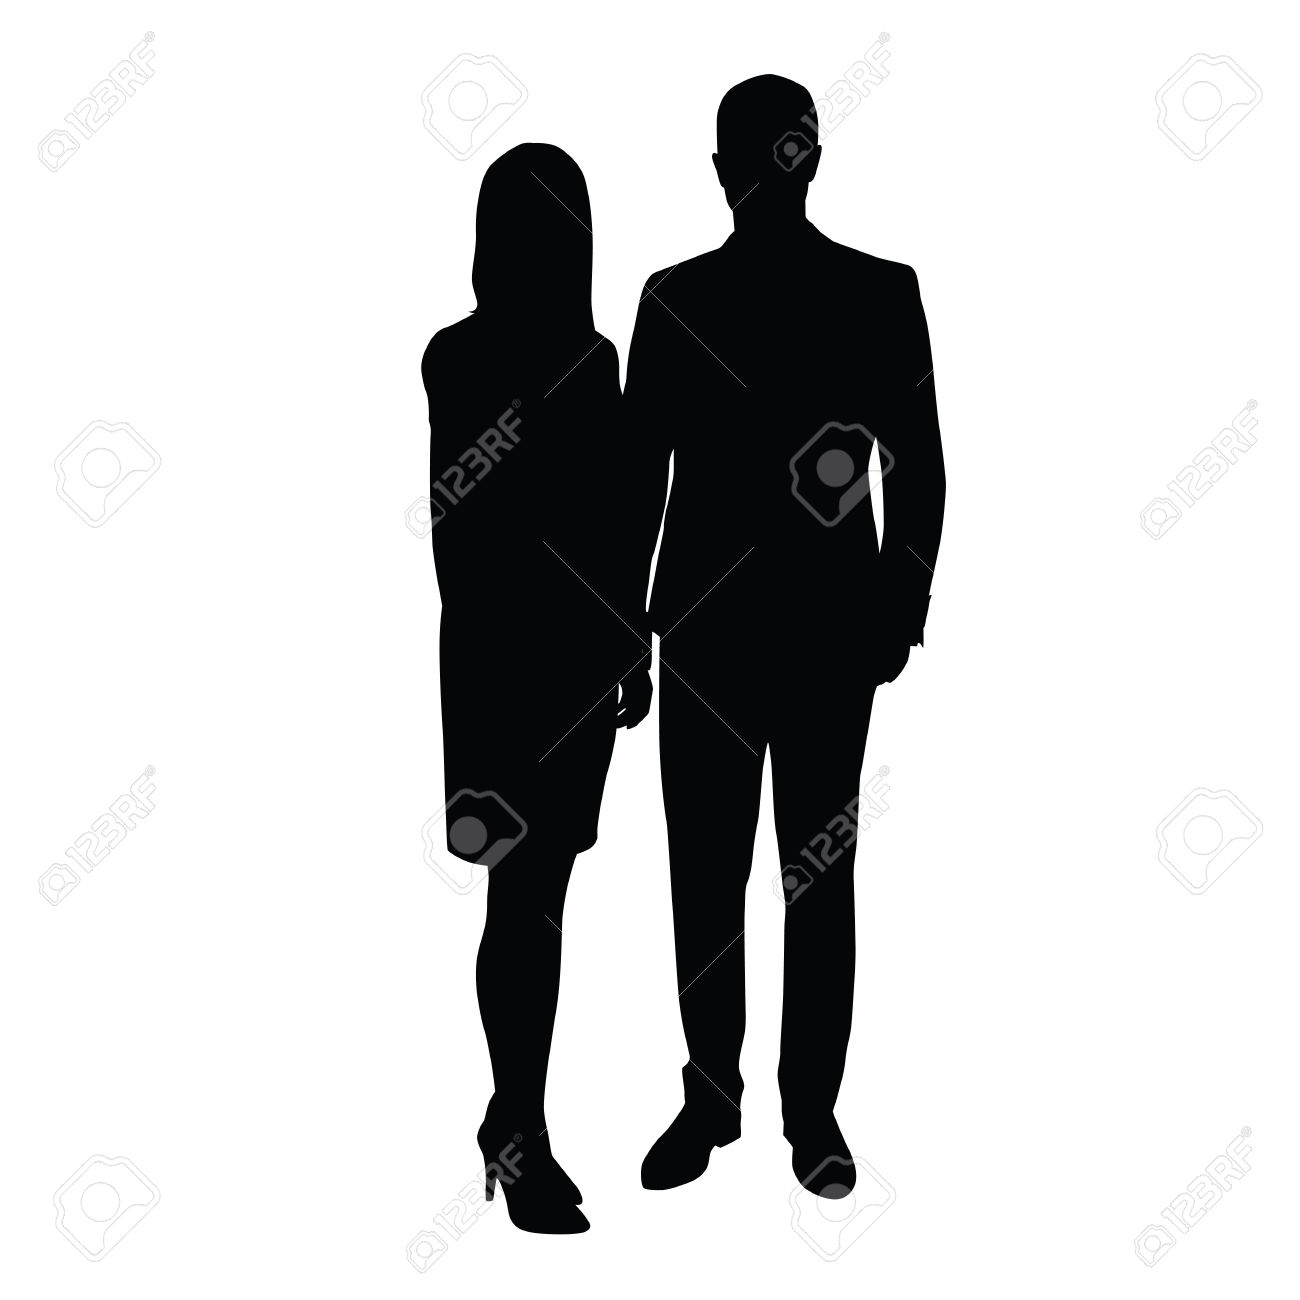 Man And Woman In Formal Wear Standing Side By Side. Silhouette.